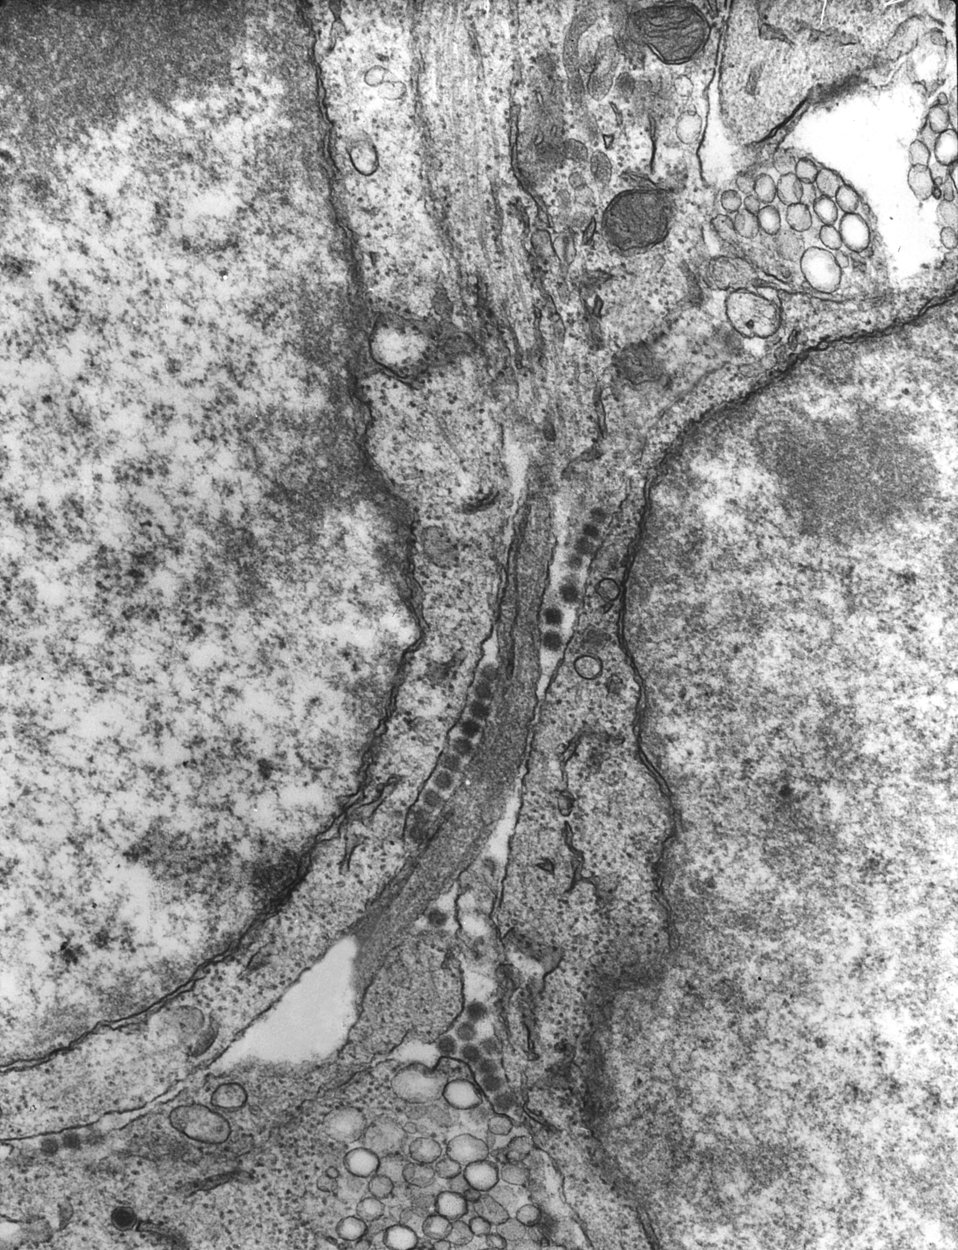 This 1975 transmission electron micrograph (TEM) revealed the presence of a number of Bunyamwera virus virions, a member of the virus family